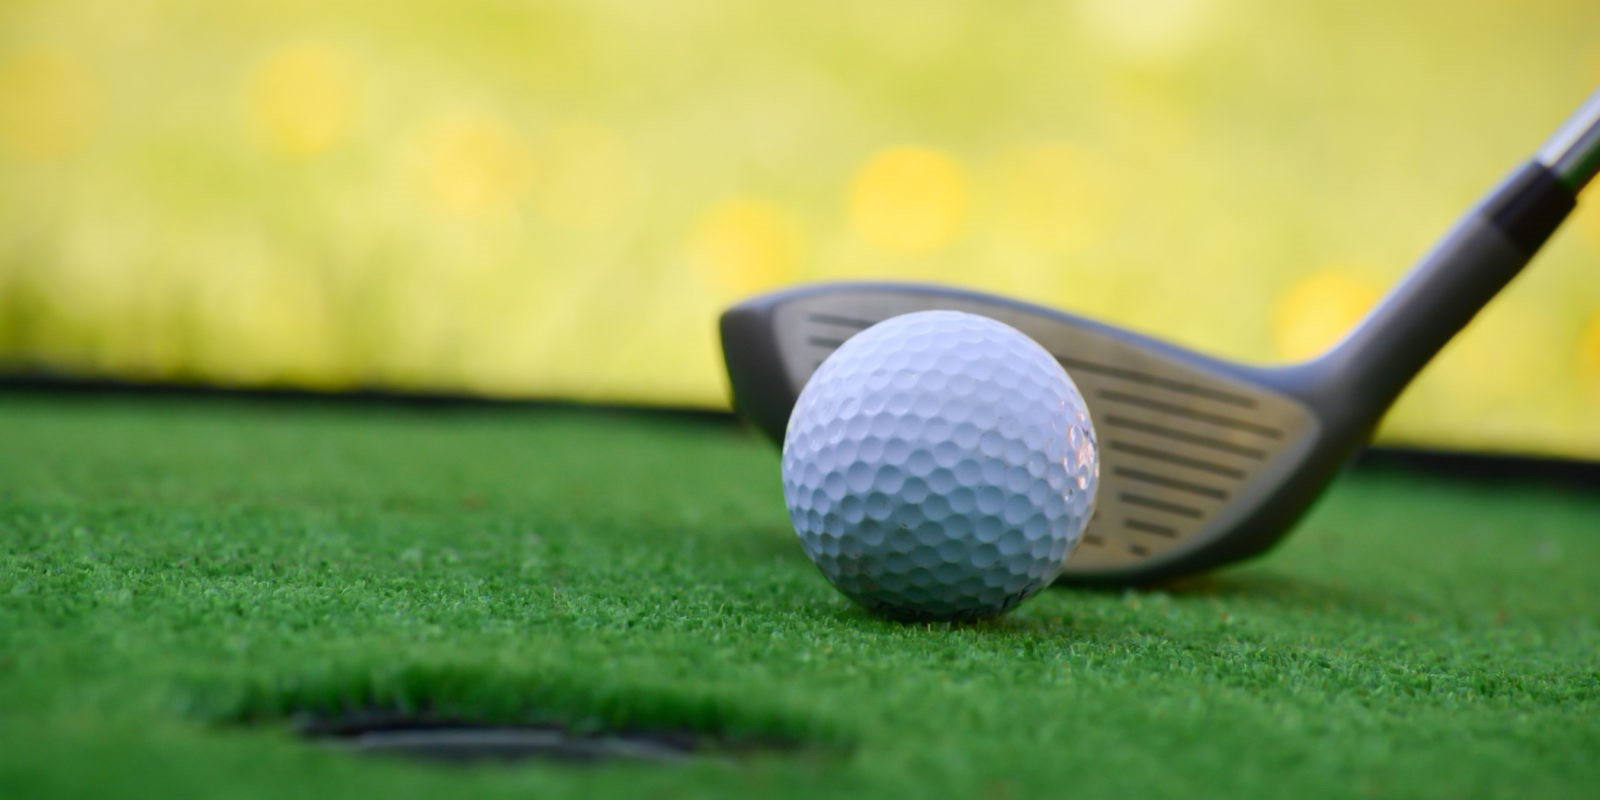 Swinging into 2021: 5 Ways to Improve Your Golf Game